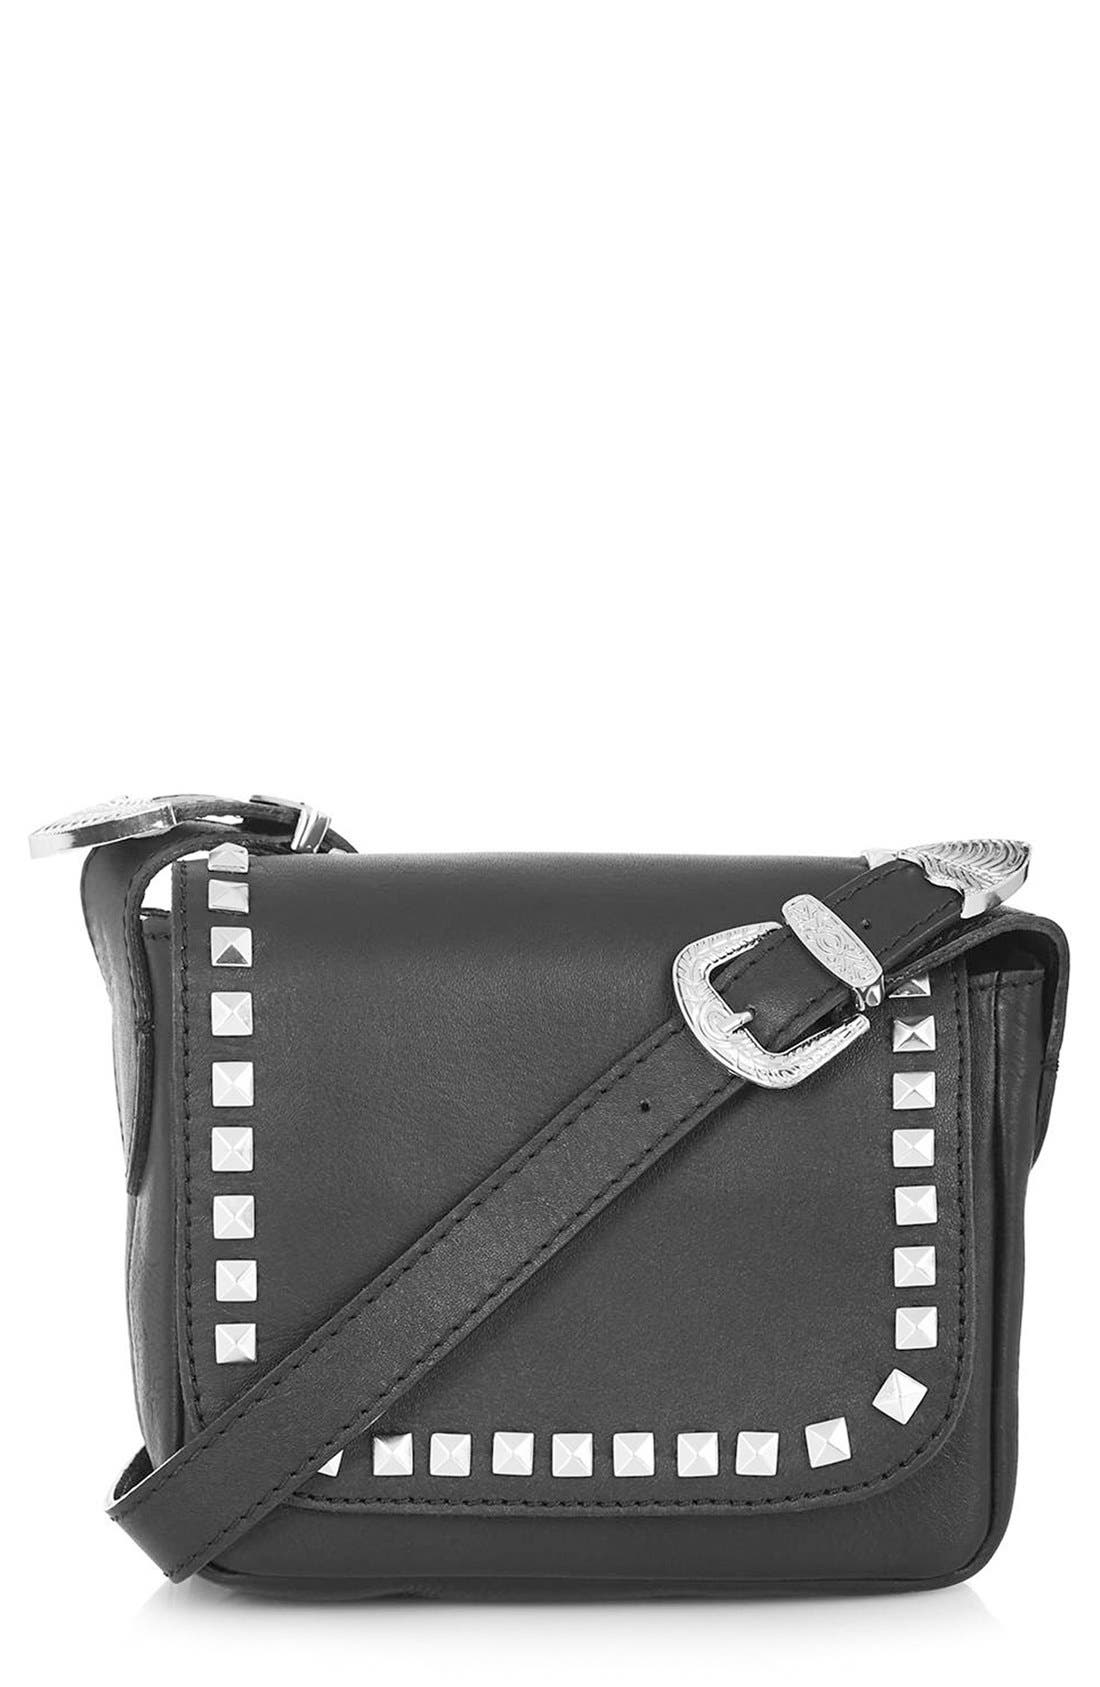 Main Image - Topshop 'Rodeo' Studded Leather Crossbody Bag